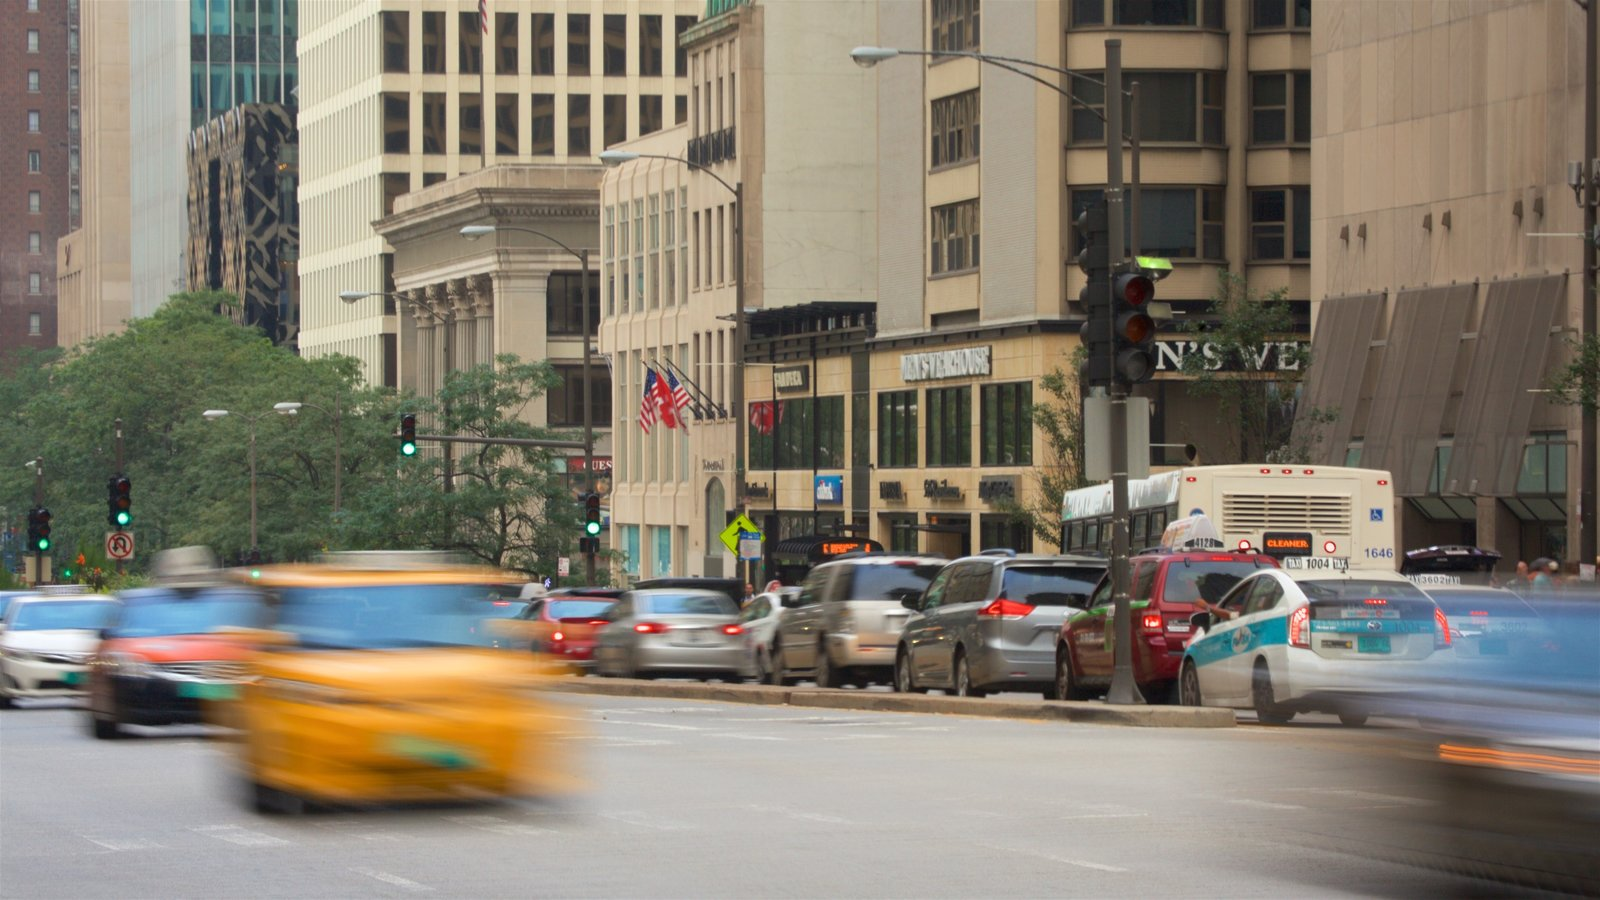 Magnificent Mile - River North showing central business district, a city and street scenes